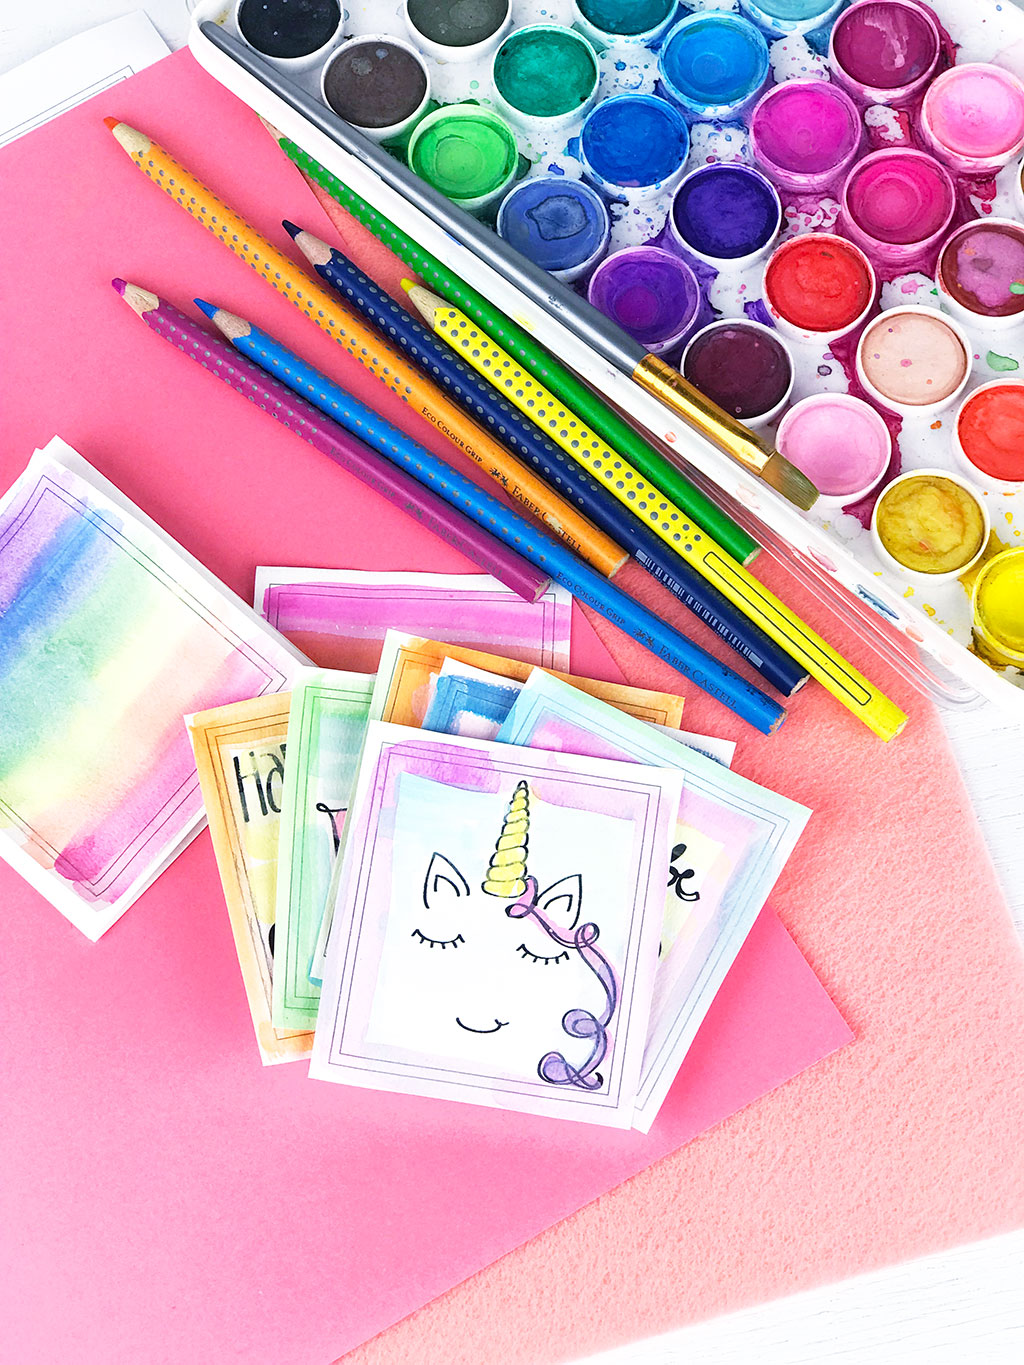 Learning About Color By Coloring | We can learn about colors by coloring. Make a coloring book that you can put together yourself and then color however you'd like. Play with the coloring supplies you use, blend colors or draw your own designs to color. #color #art #kids #activity